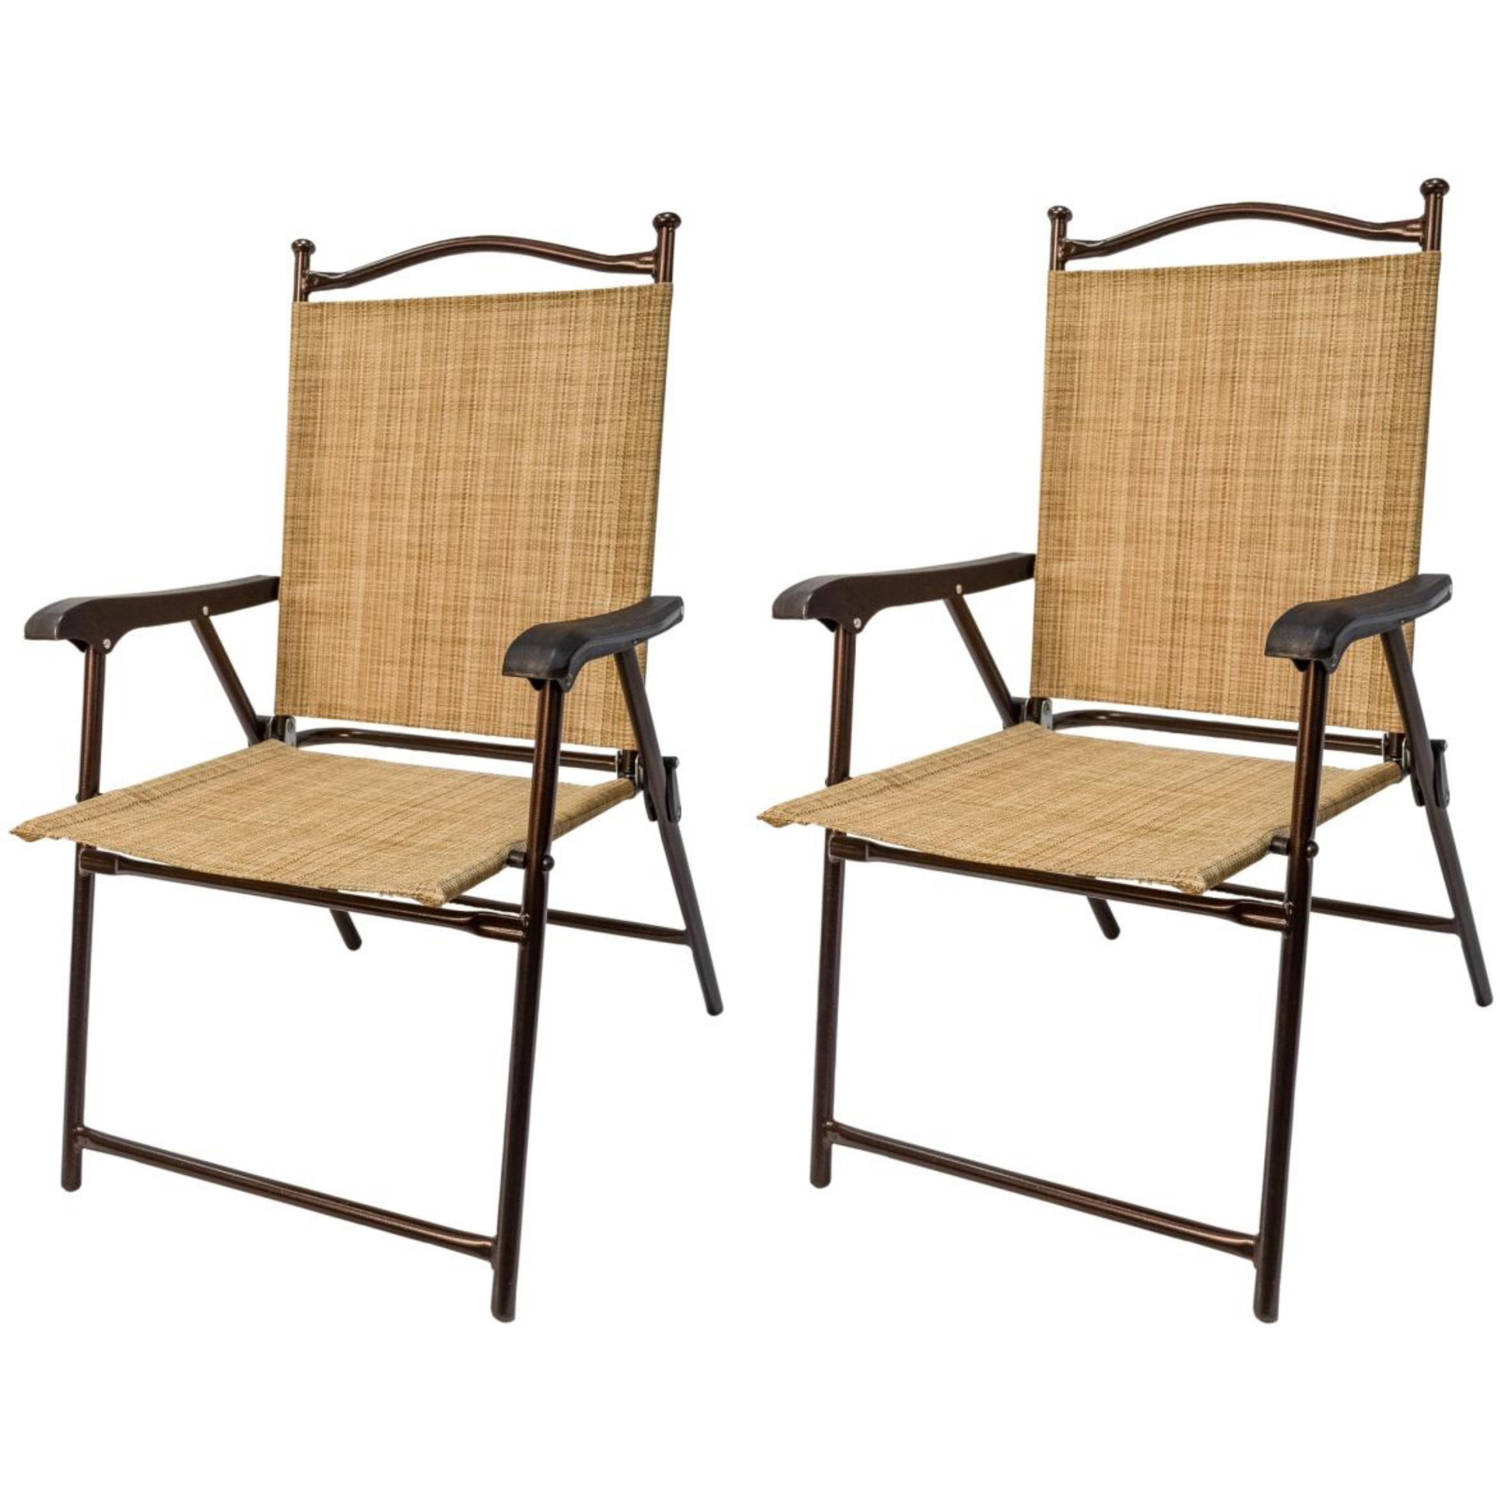 lawn chairs sling black outdoor chairs, bamboo, set of 2 QXMTHIN